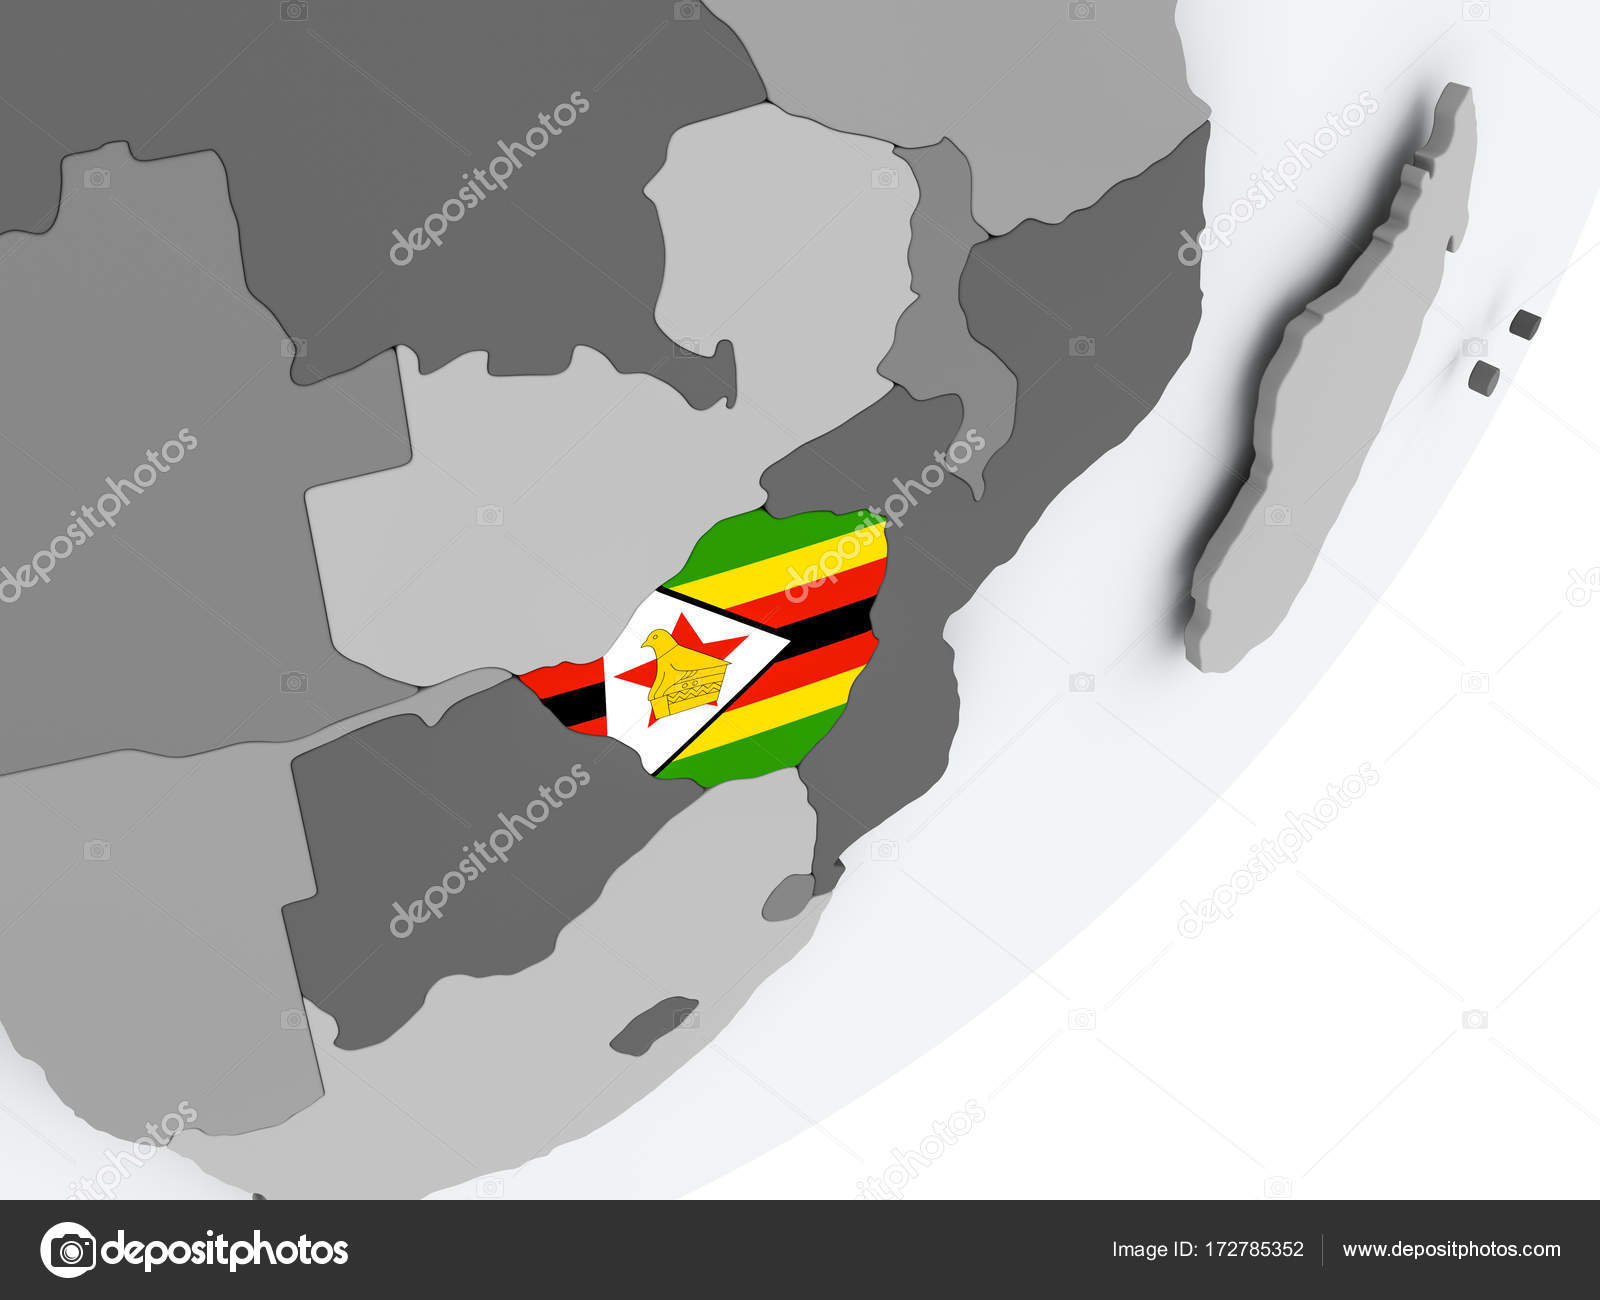 Flag of Zimbabwe on map — Stock Photo © tom.griger #172785352 Zimbabwe On Map on mafia island on map, tasmania australia on map, uganda on map, sudan on map, francia on map, sahel on map, buganda on map, libreville on map, rwanda on map, tanzania on map, namibia on map, british somaliland on map, angola on map, eastern africa on map, chad on map, nicaragua on map, axum on map, basutoland on map, yuan dynasty on map, ghana on map,